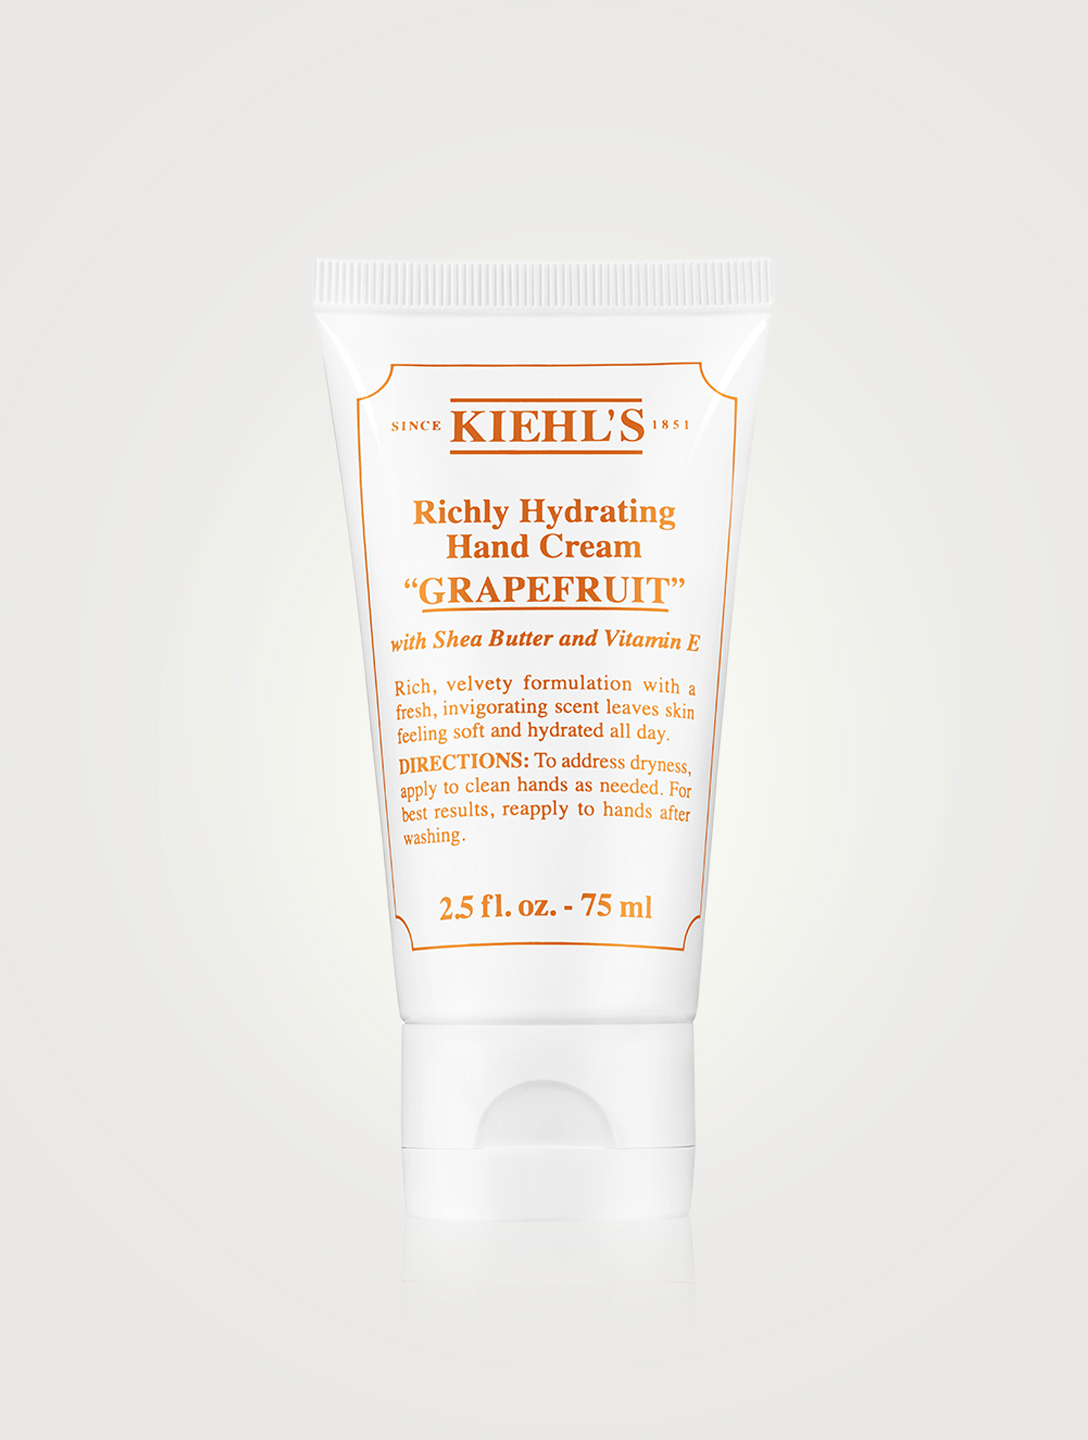 KIEHL'S Grapefruit Richly Hydrating Hand Cream Beauty